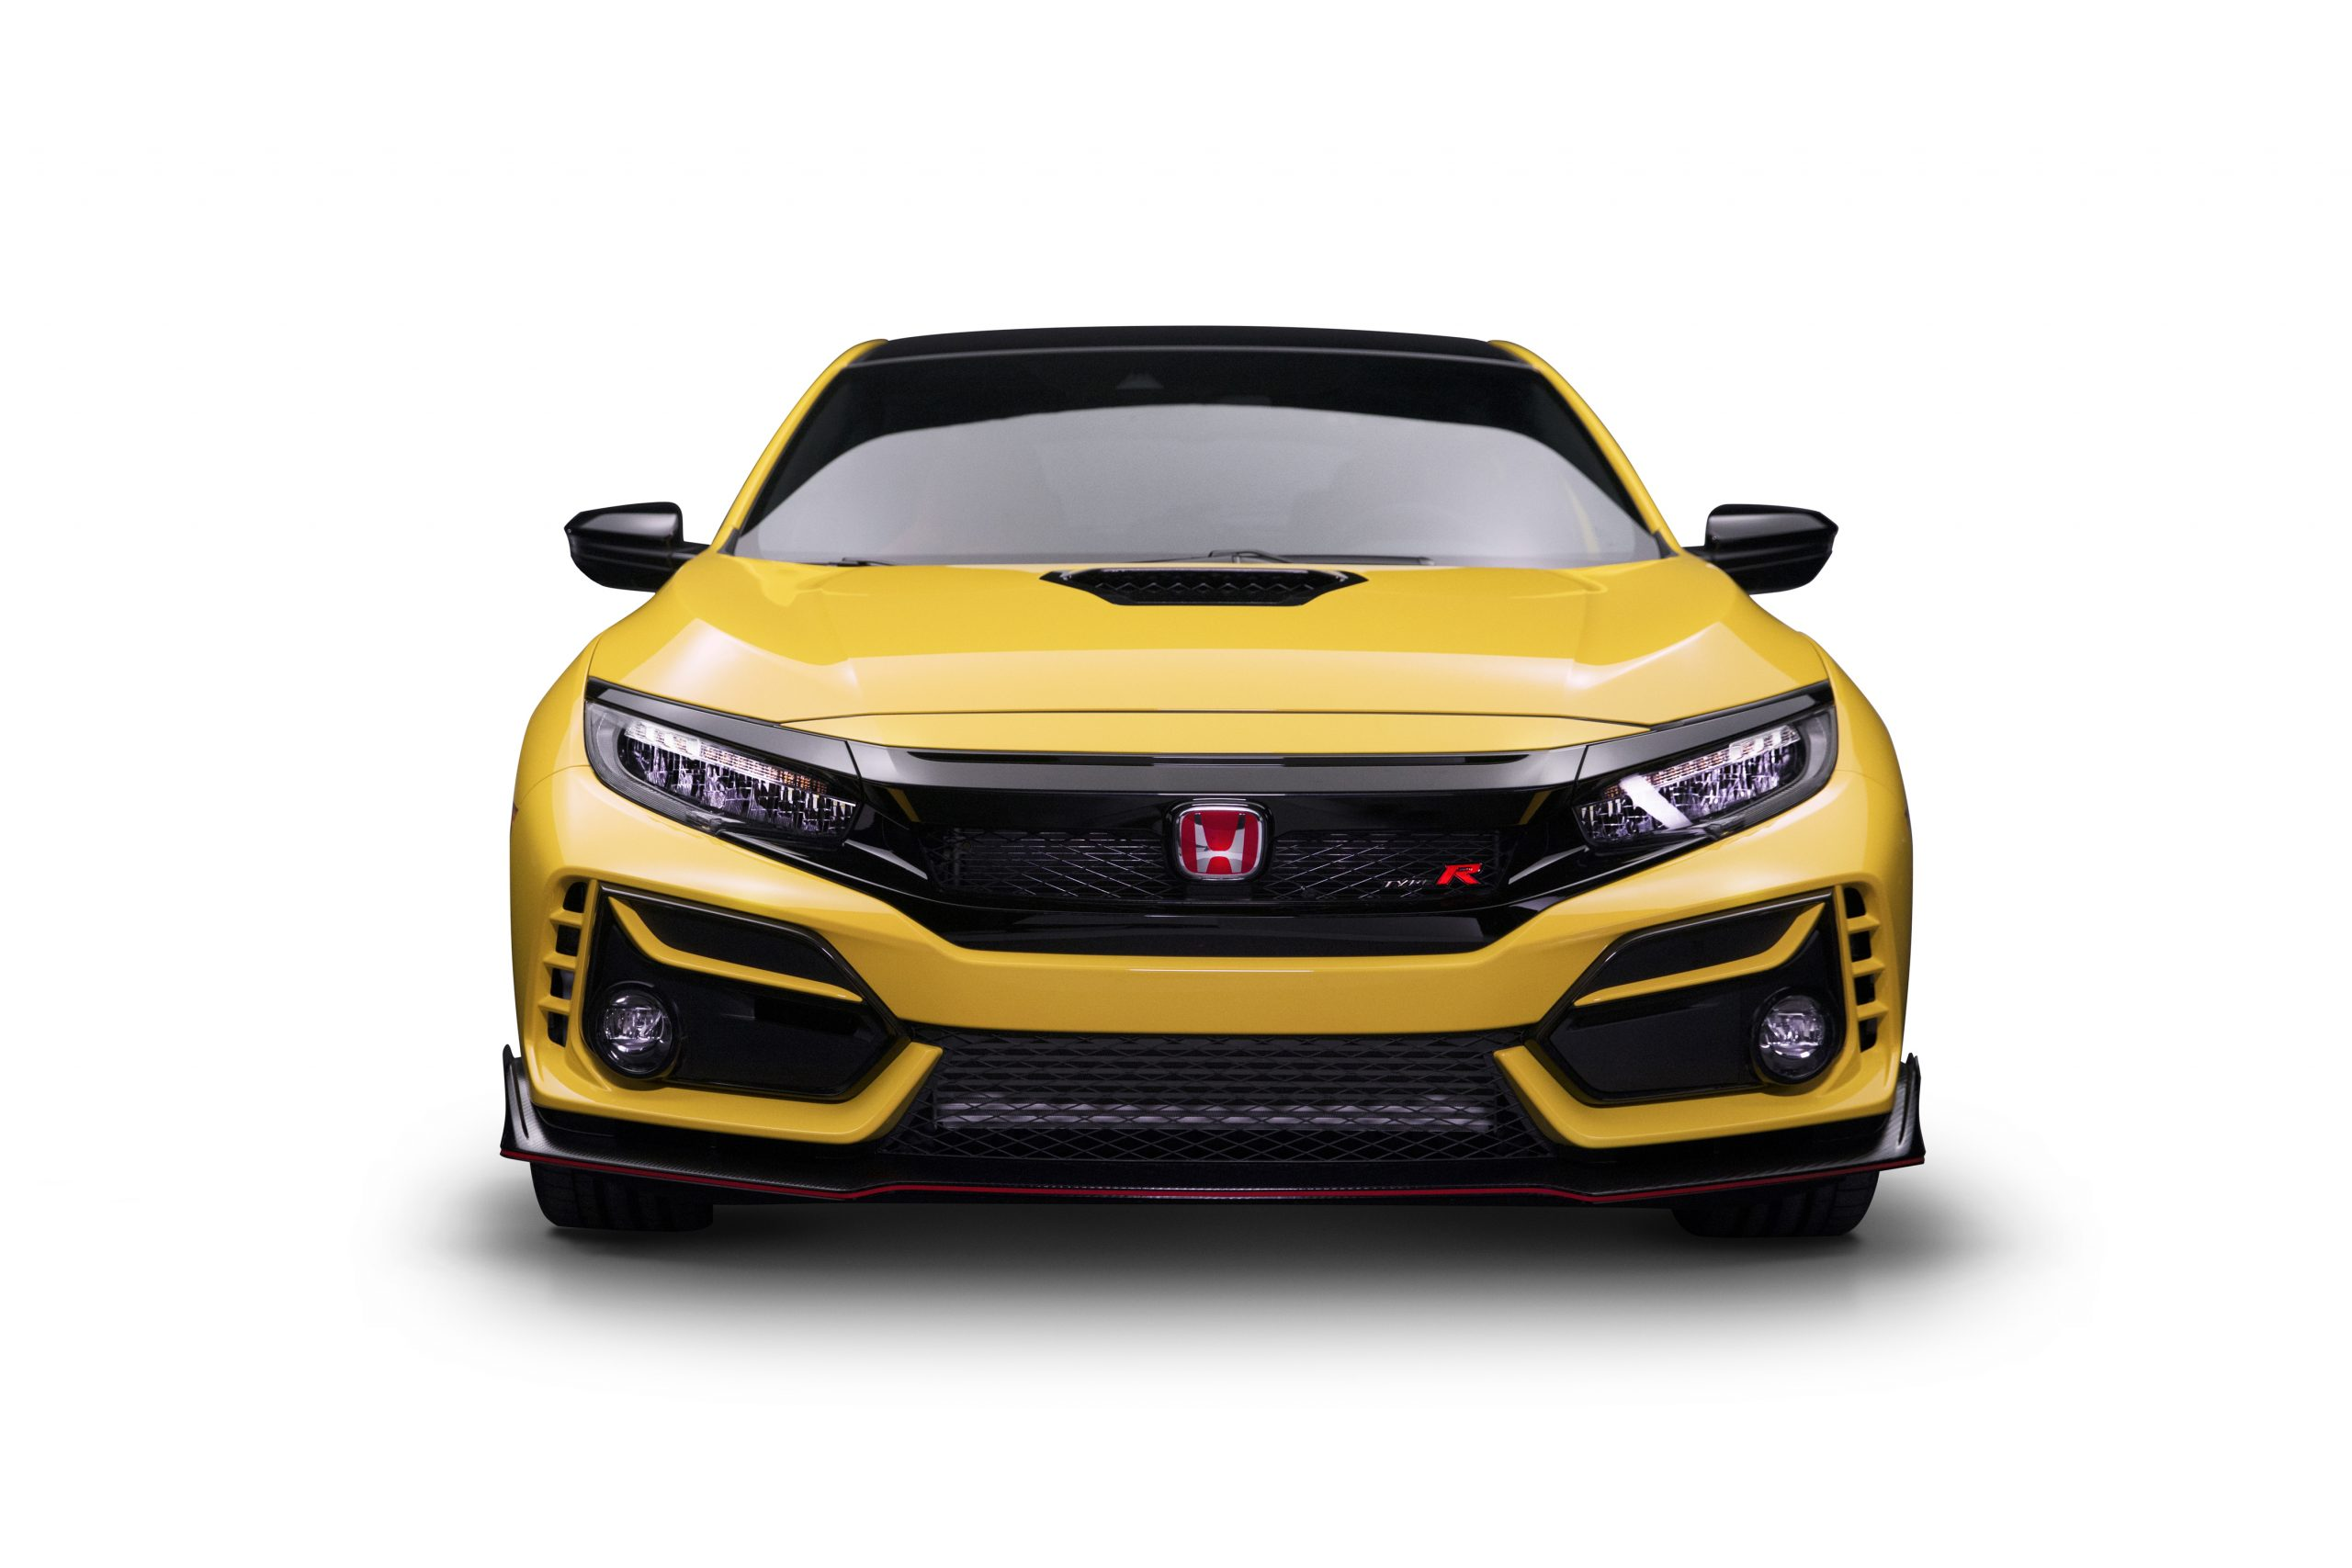 02 2021 Honda Civic Type R Limited Edition Scaled